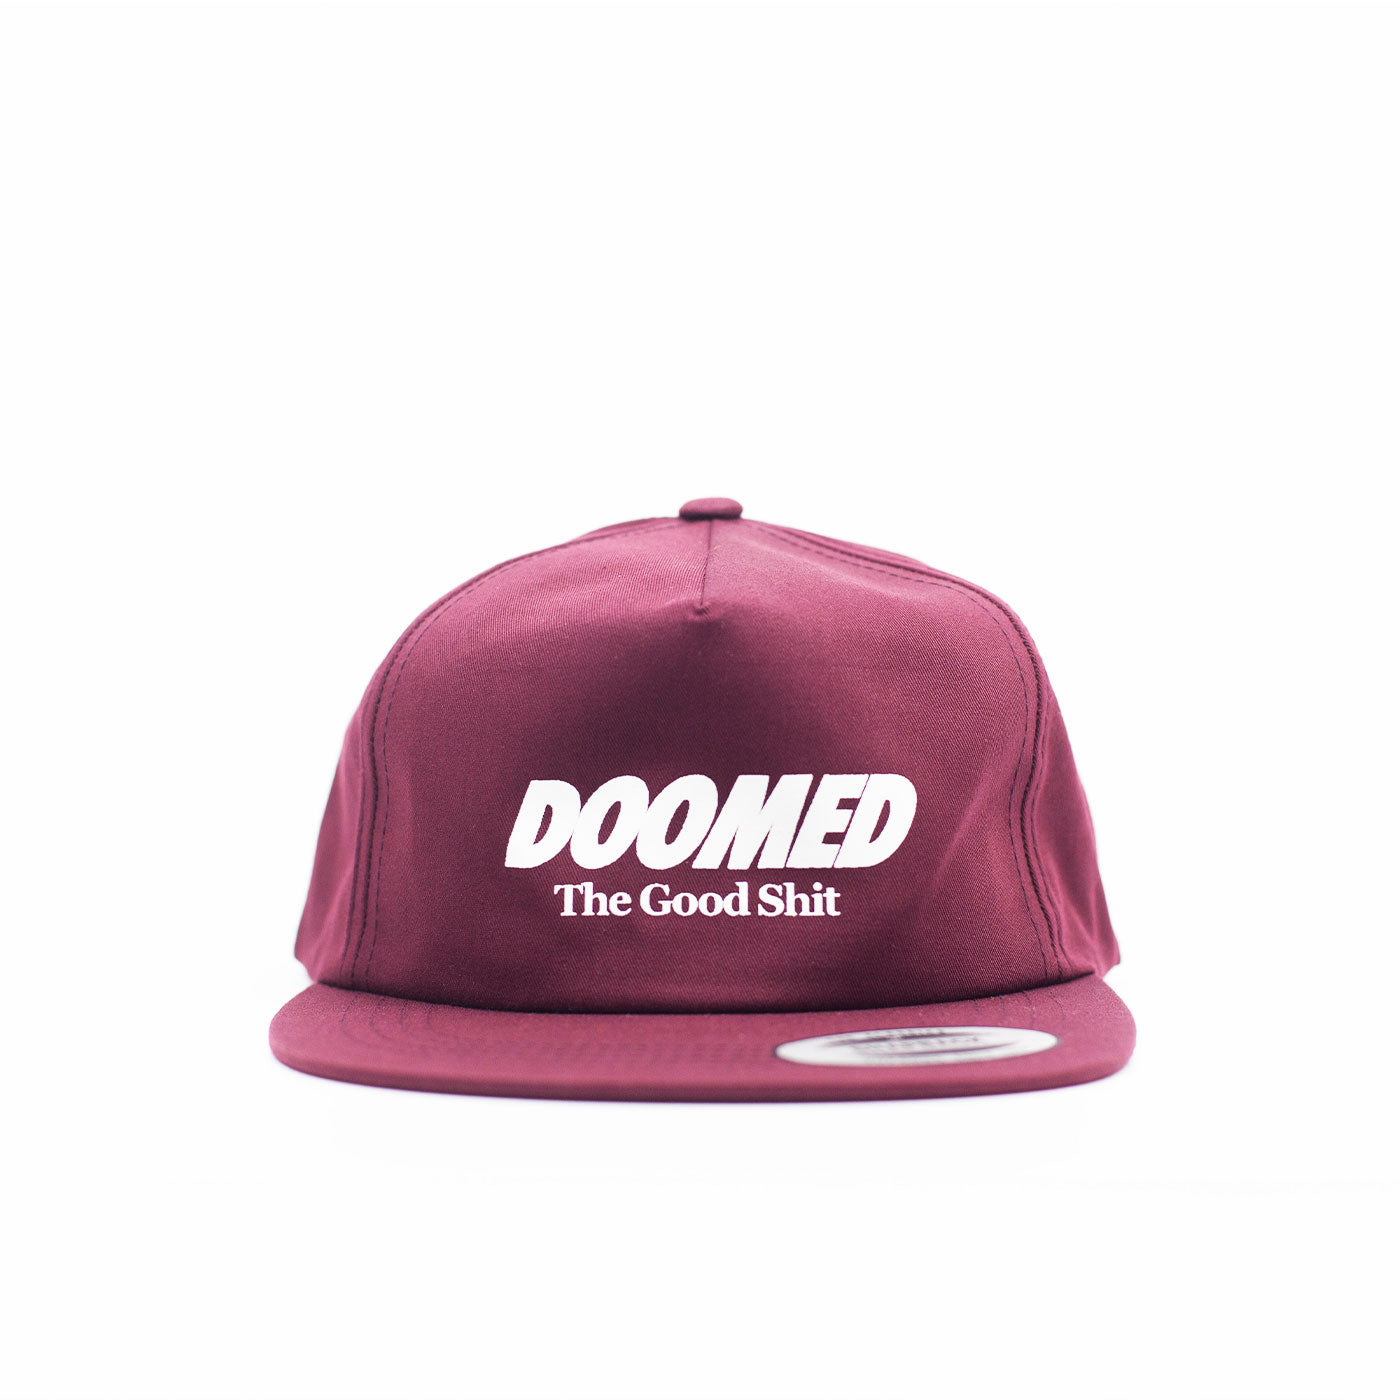 The Good Shit Snapback Maroon